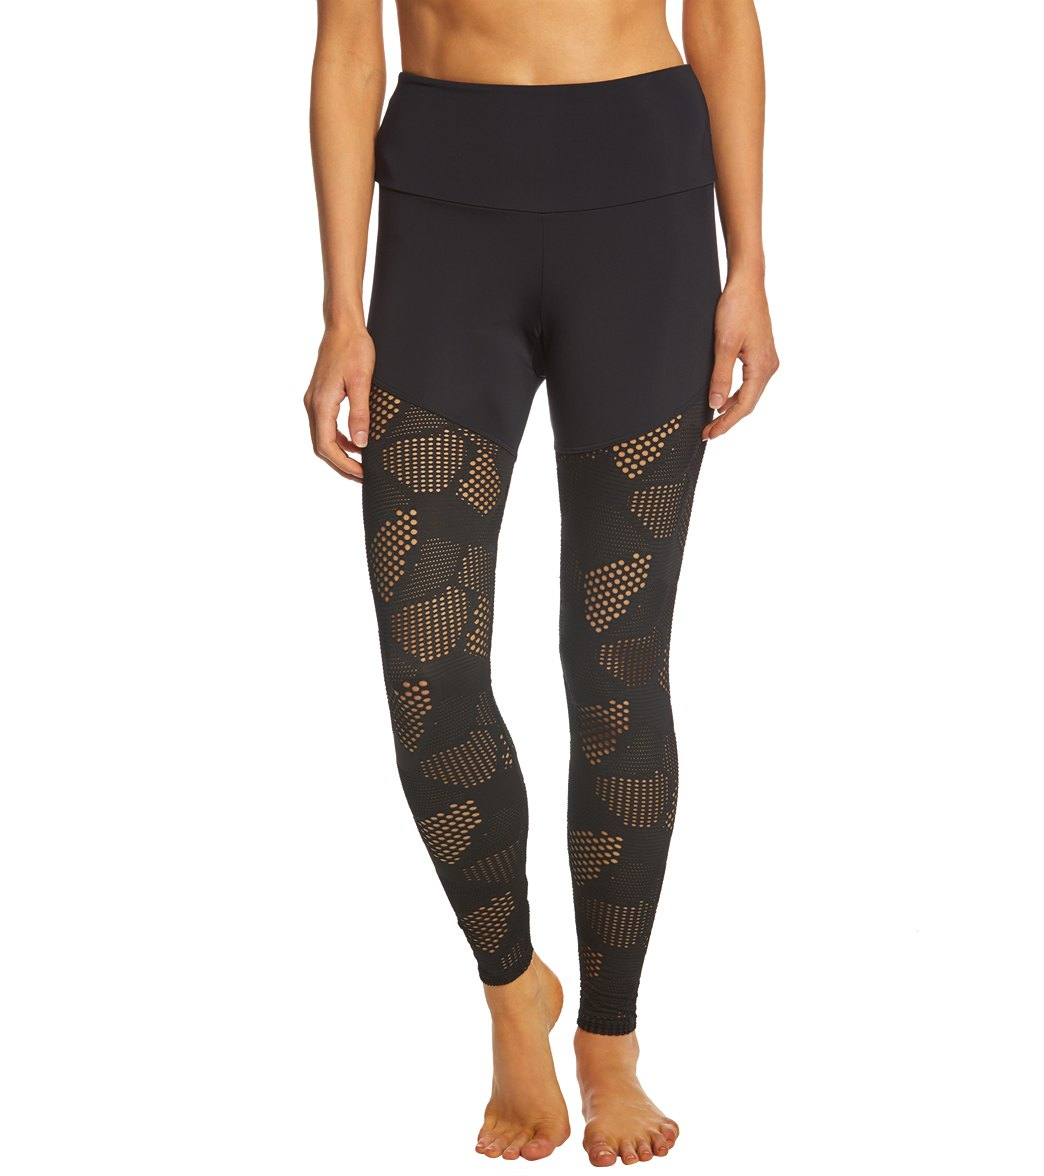 c6149732f2f6e Onzie Half/Half 2.0 7/8 Yoga Leggings at SwimOutlet.com - Free Shipping